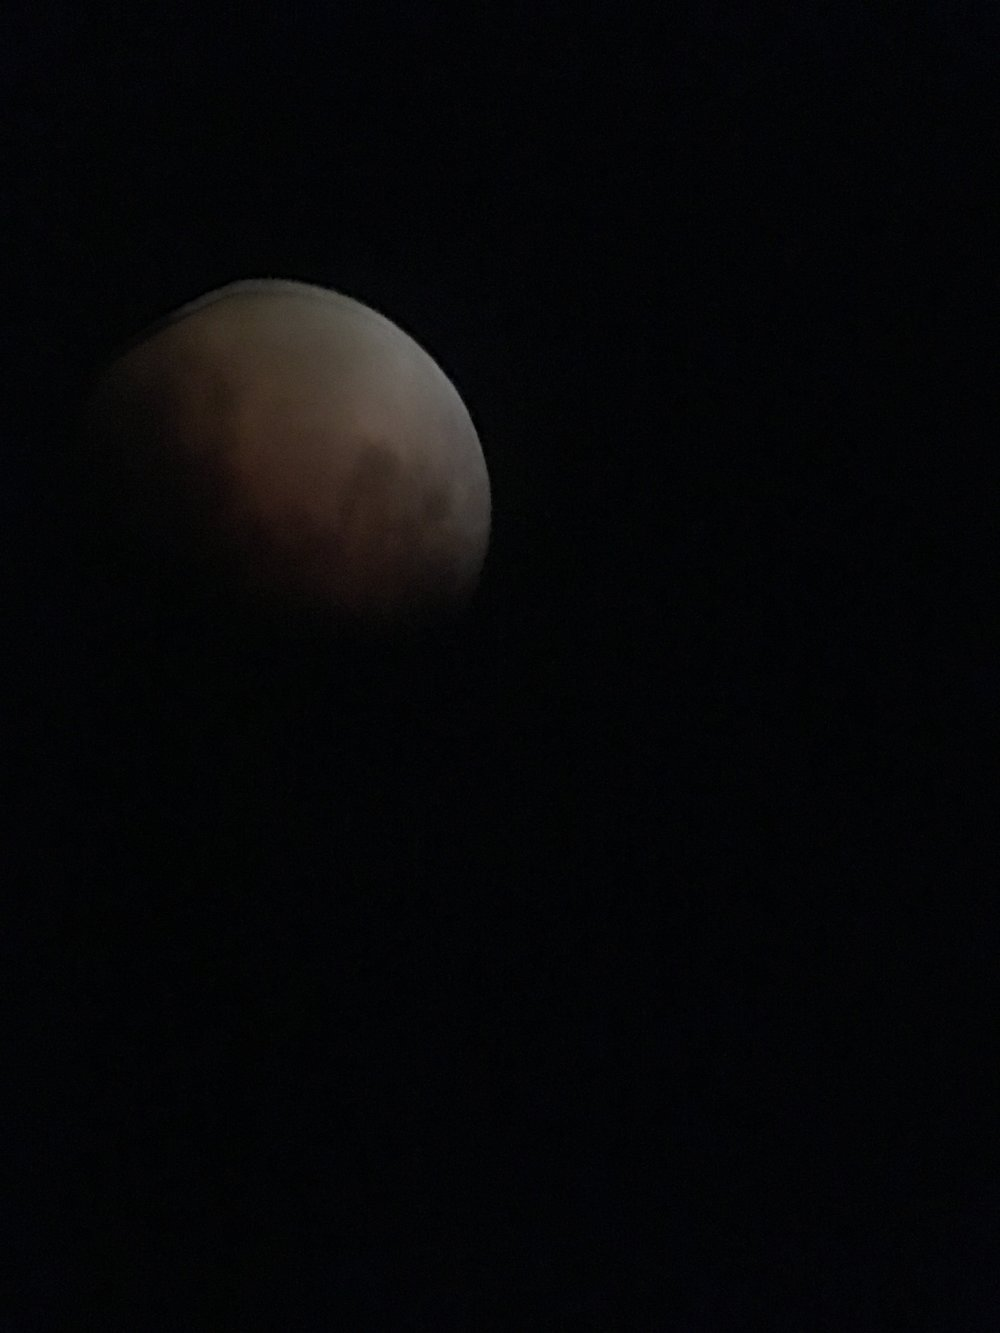 moon eclipse close up with black background.